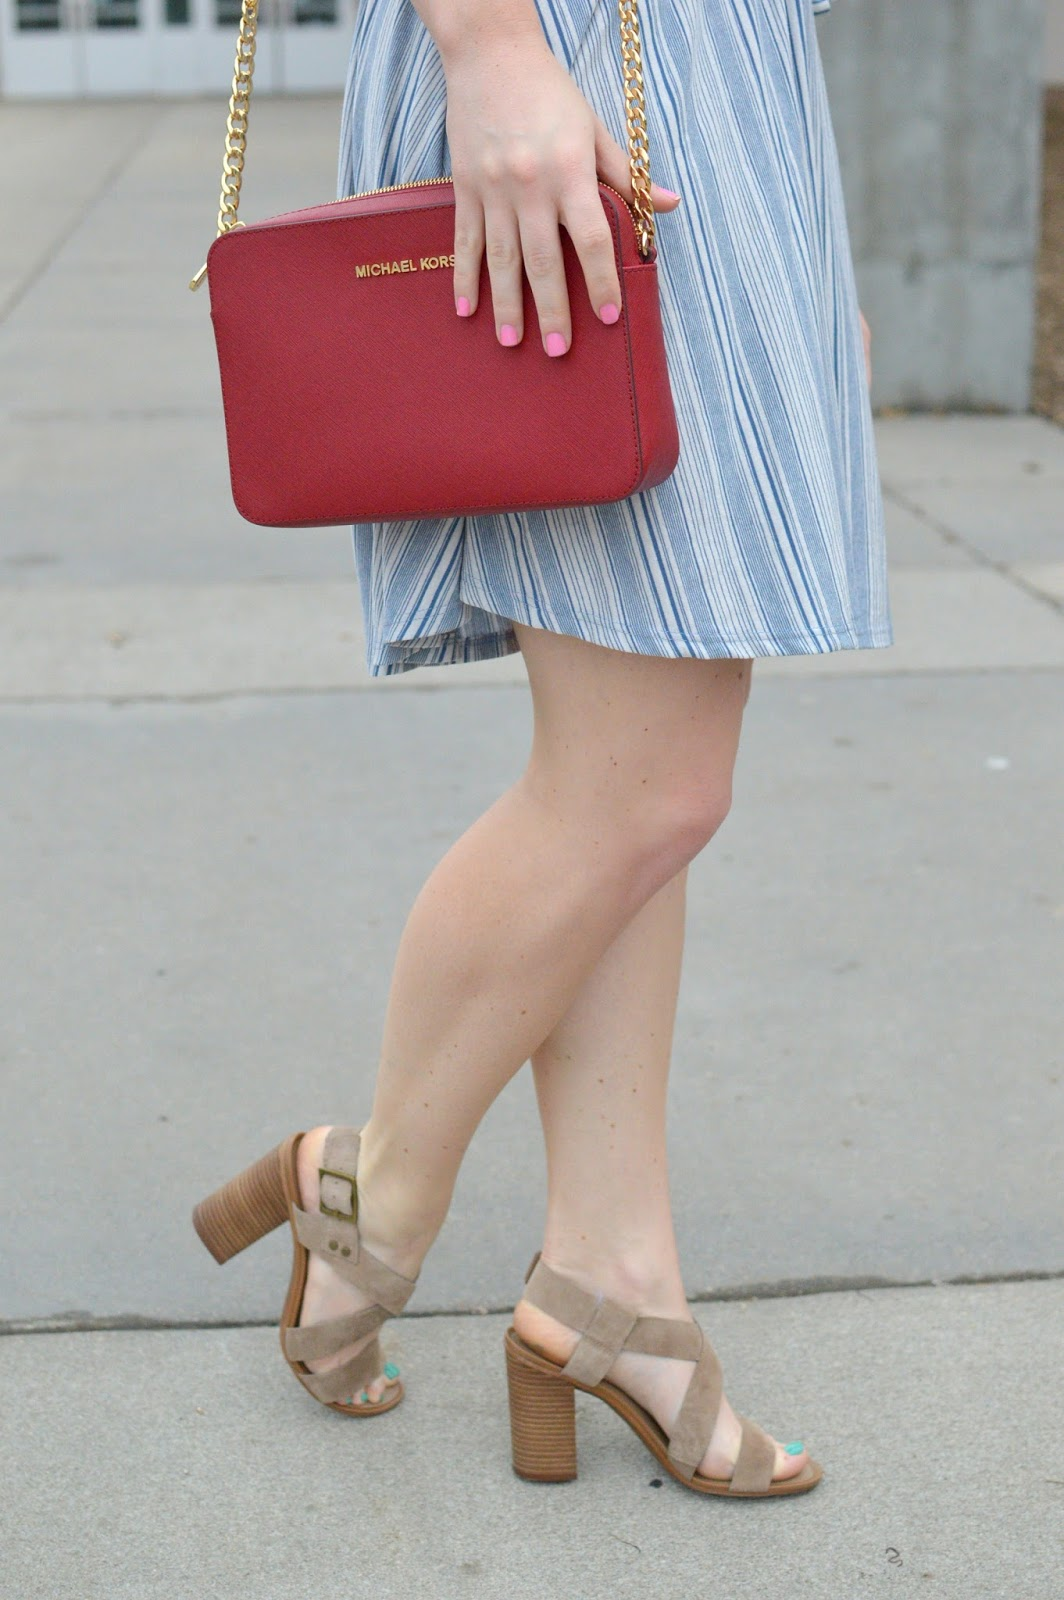 chunky heeled sandals and a red purse